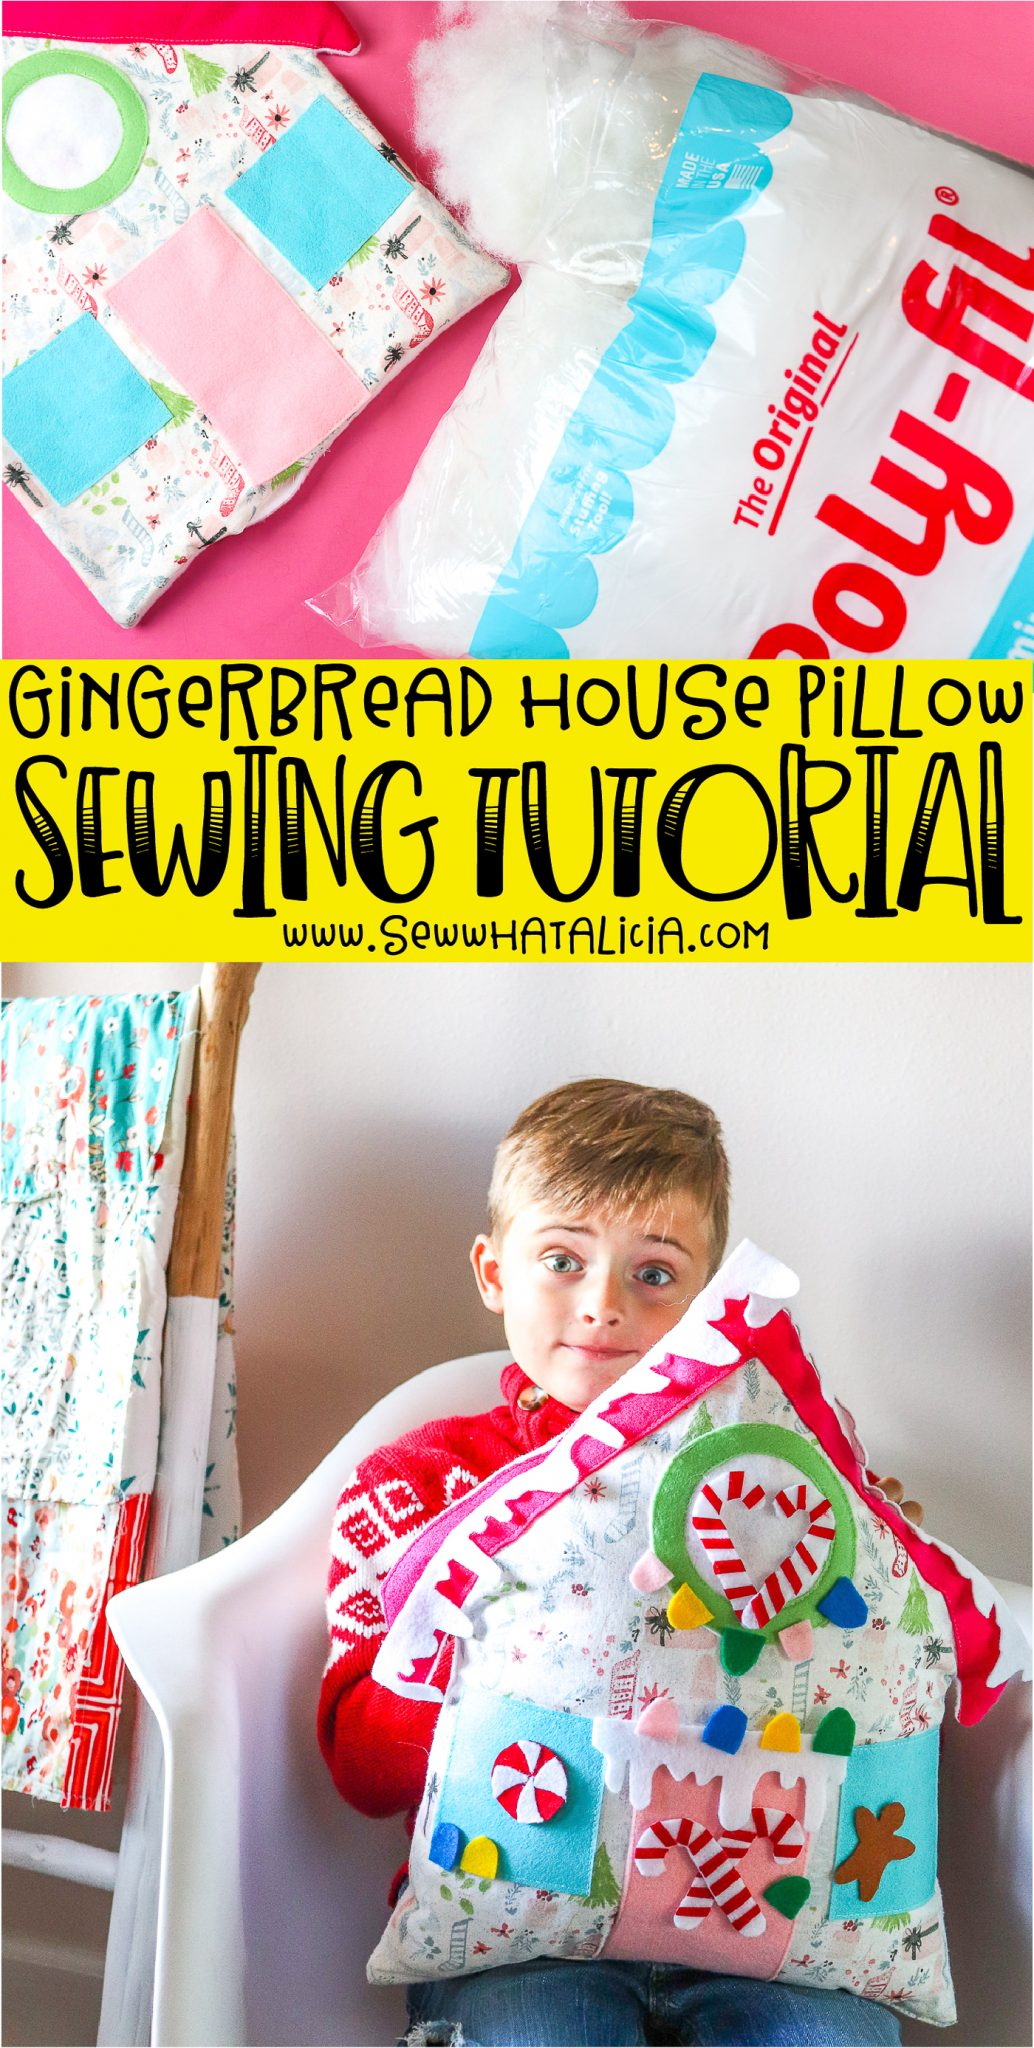 sewn gingerbread house pillow with an open bag of polyfil stuffing, wording that reads gingerbread house pillow sewing tutorial, boy holding finished pillow decorated with felt candies